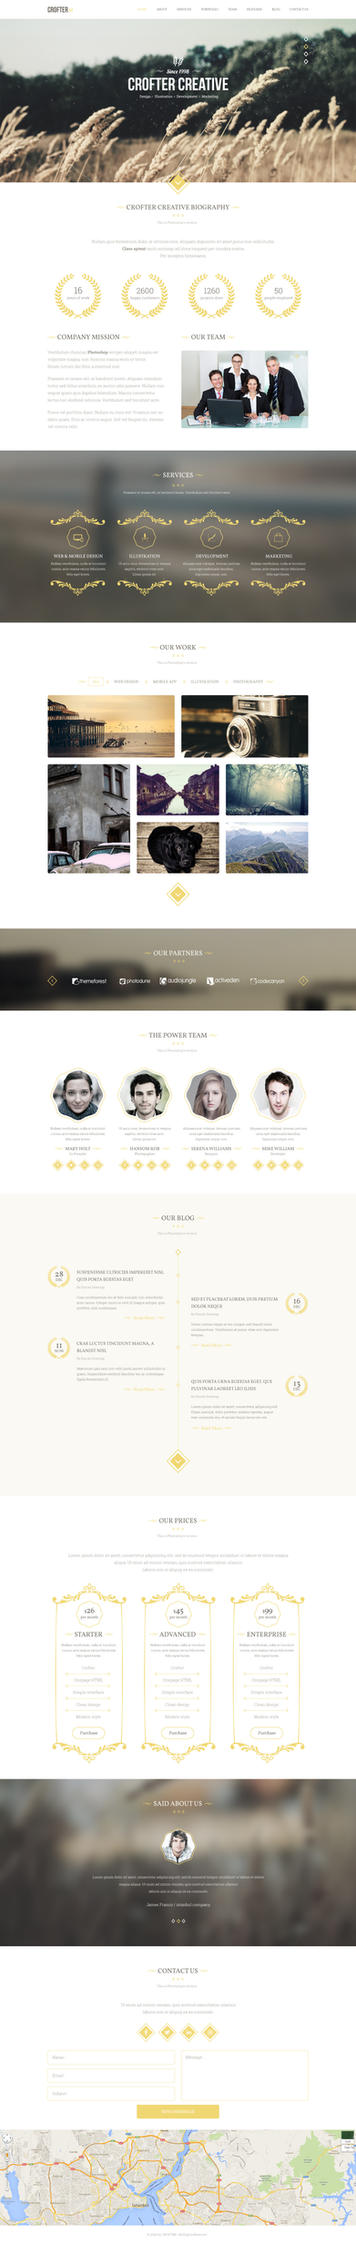 Crofter One Page PSD Template by emrah-demirag